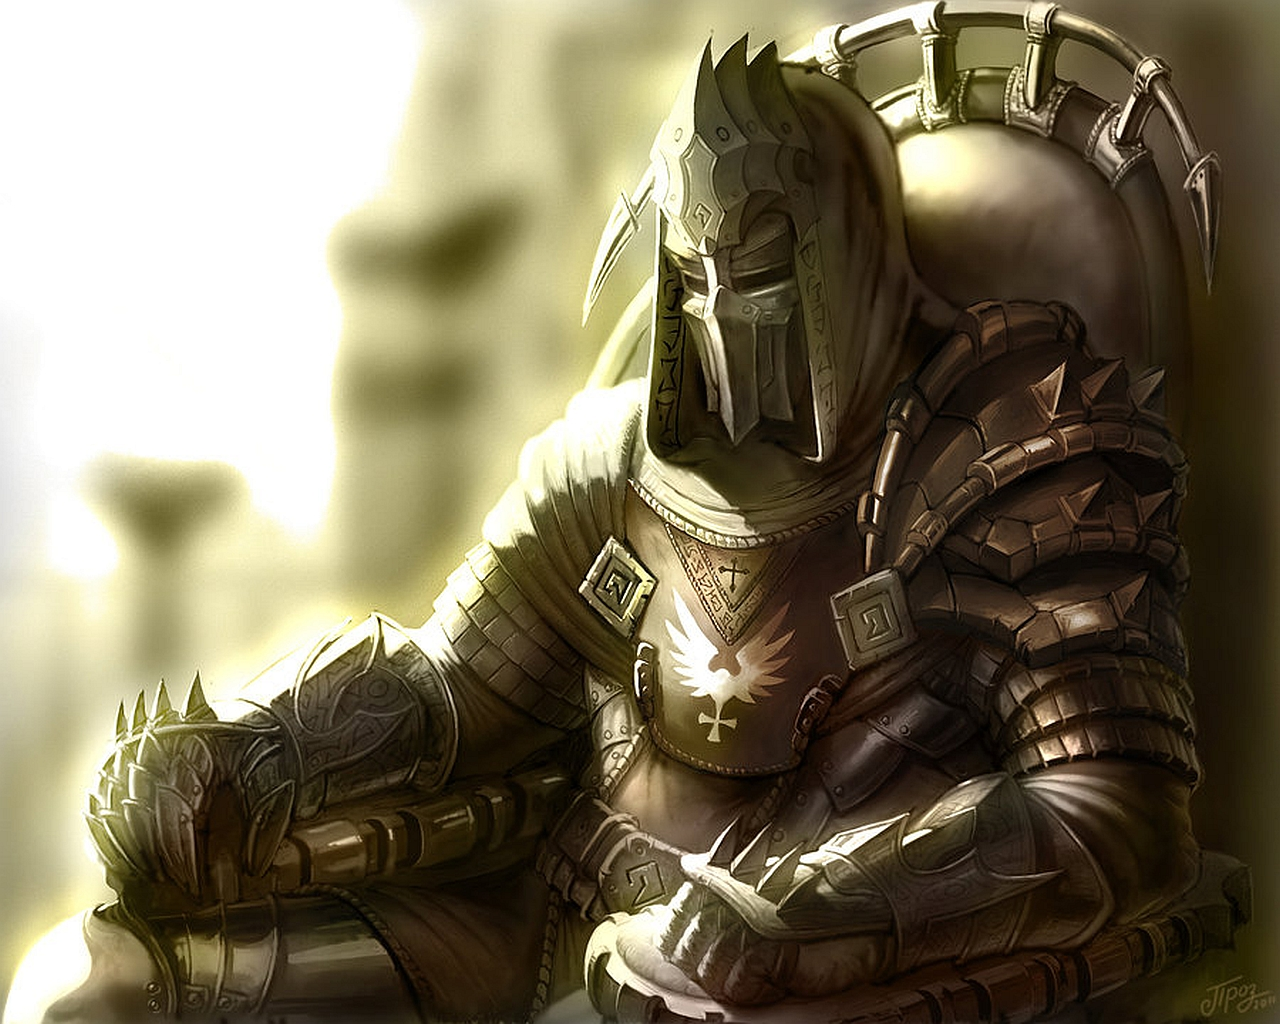 Warrior Wallpaper and Background Image 1280x1024 ID384021 1280x1024